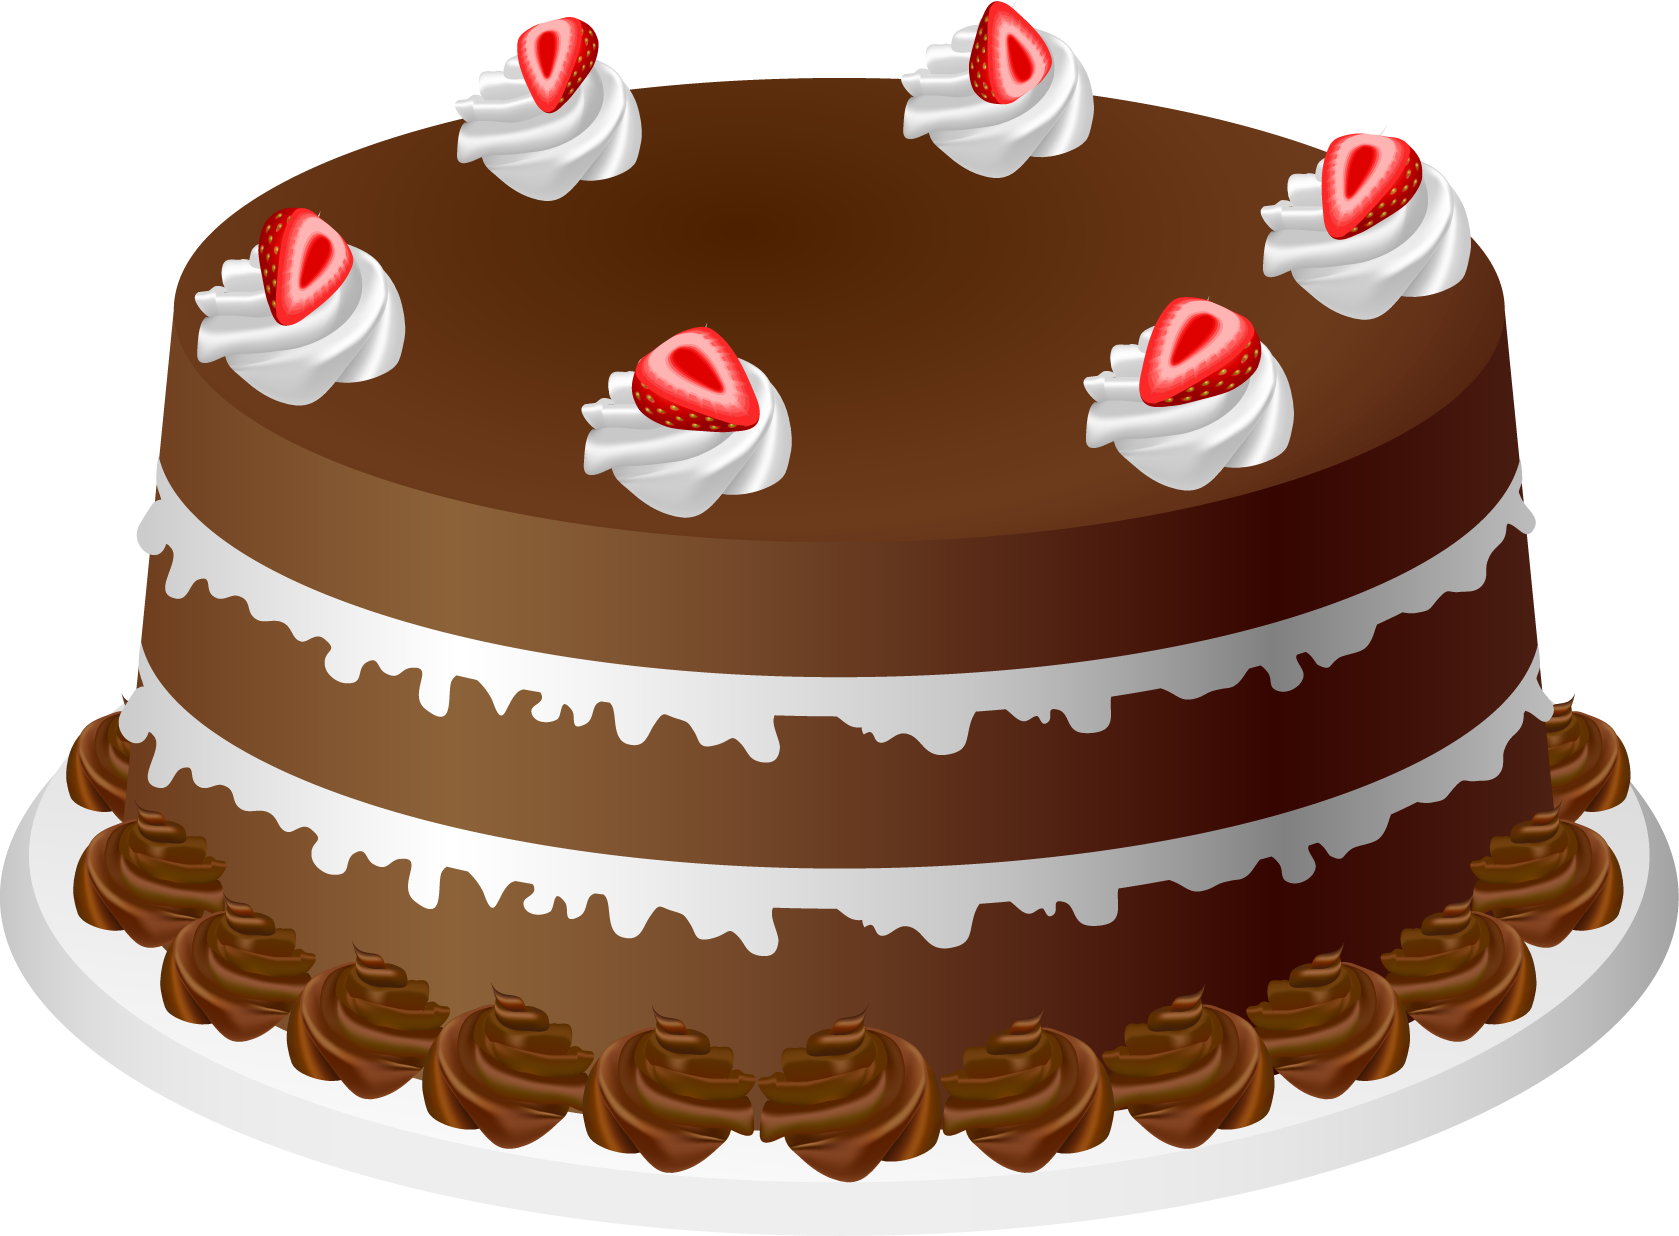 Chocolate Cake With Strawberries Using For Play Doh Mat Counting Candles Cake Chocolate Strawberry Cake Pumpkin Spice Cake